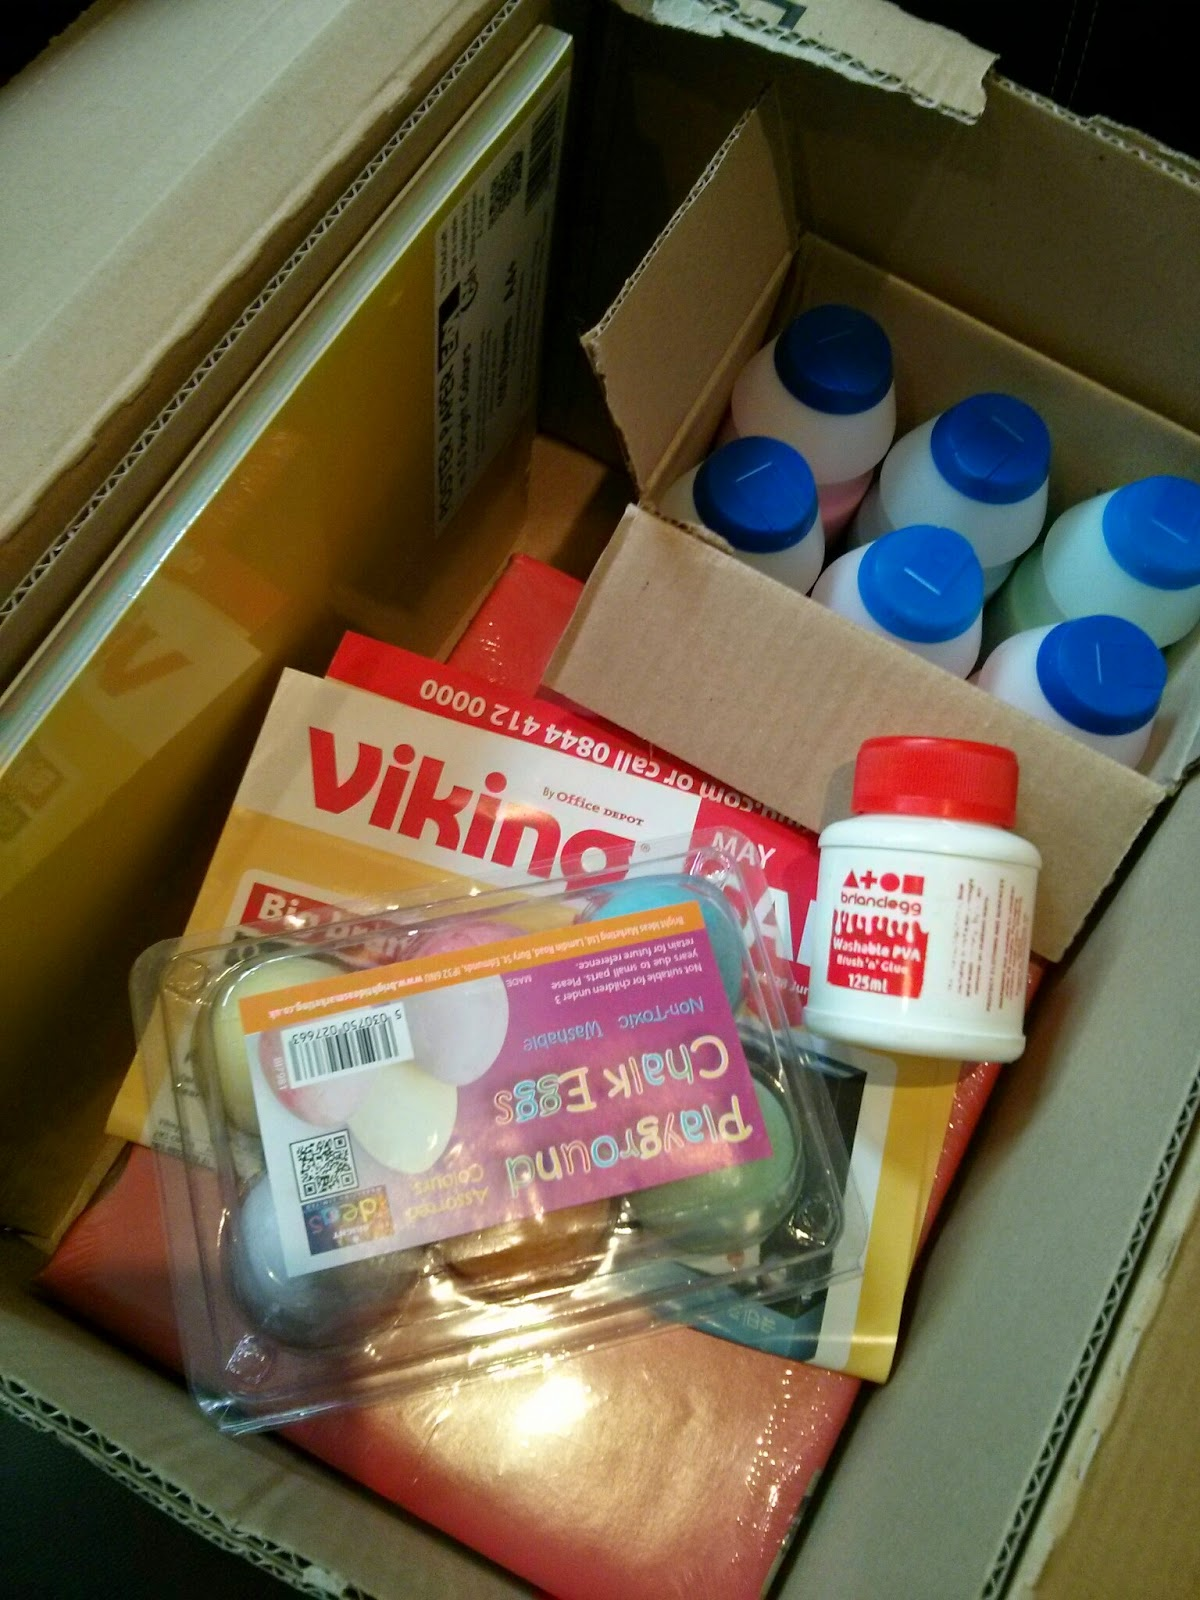 Viking supplies